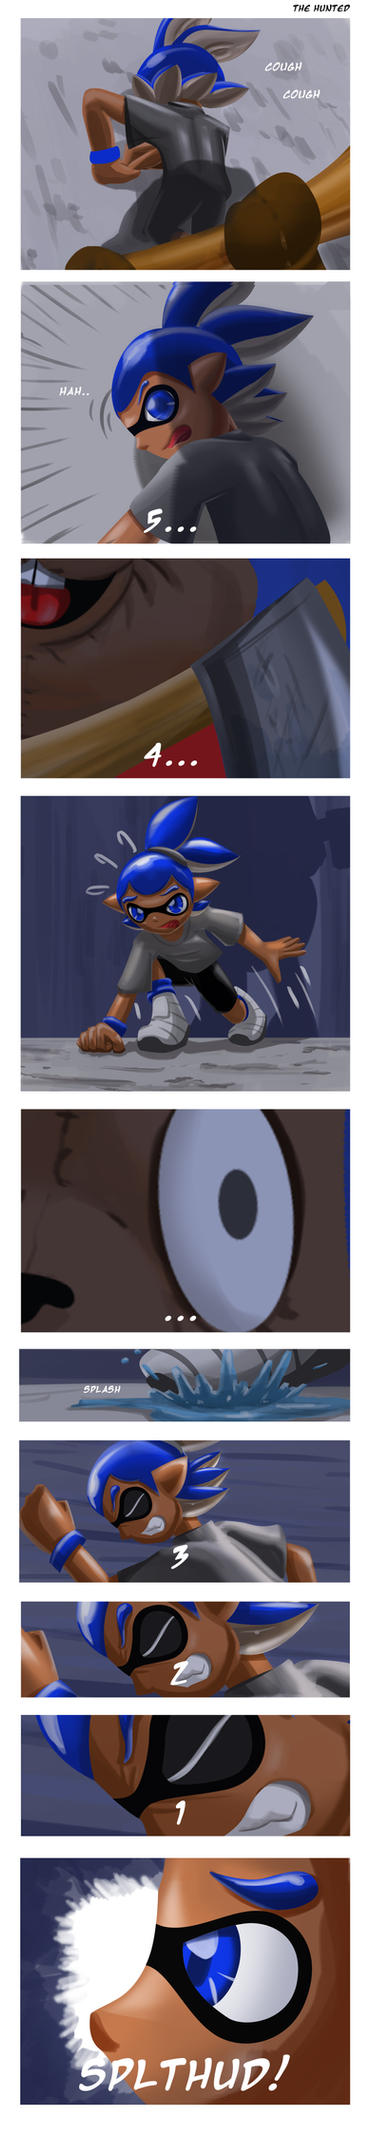 The Hunting Inklings Pt. 2 by Dogwhitesector